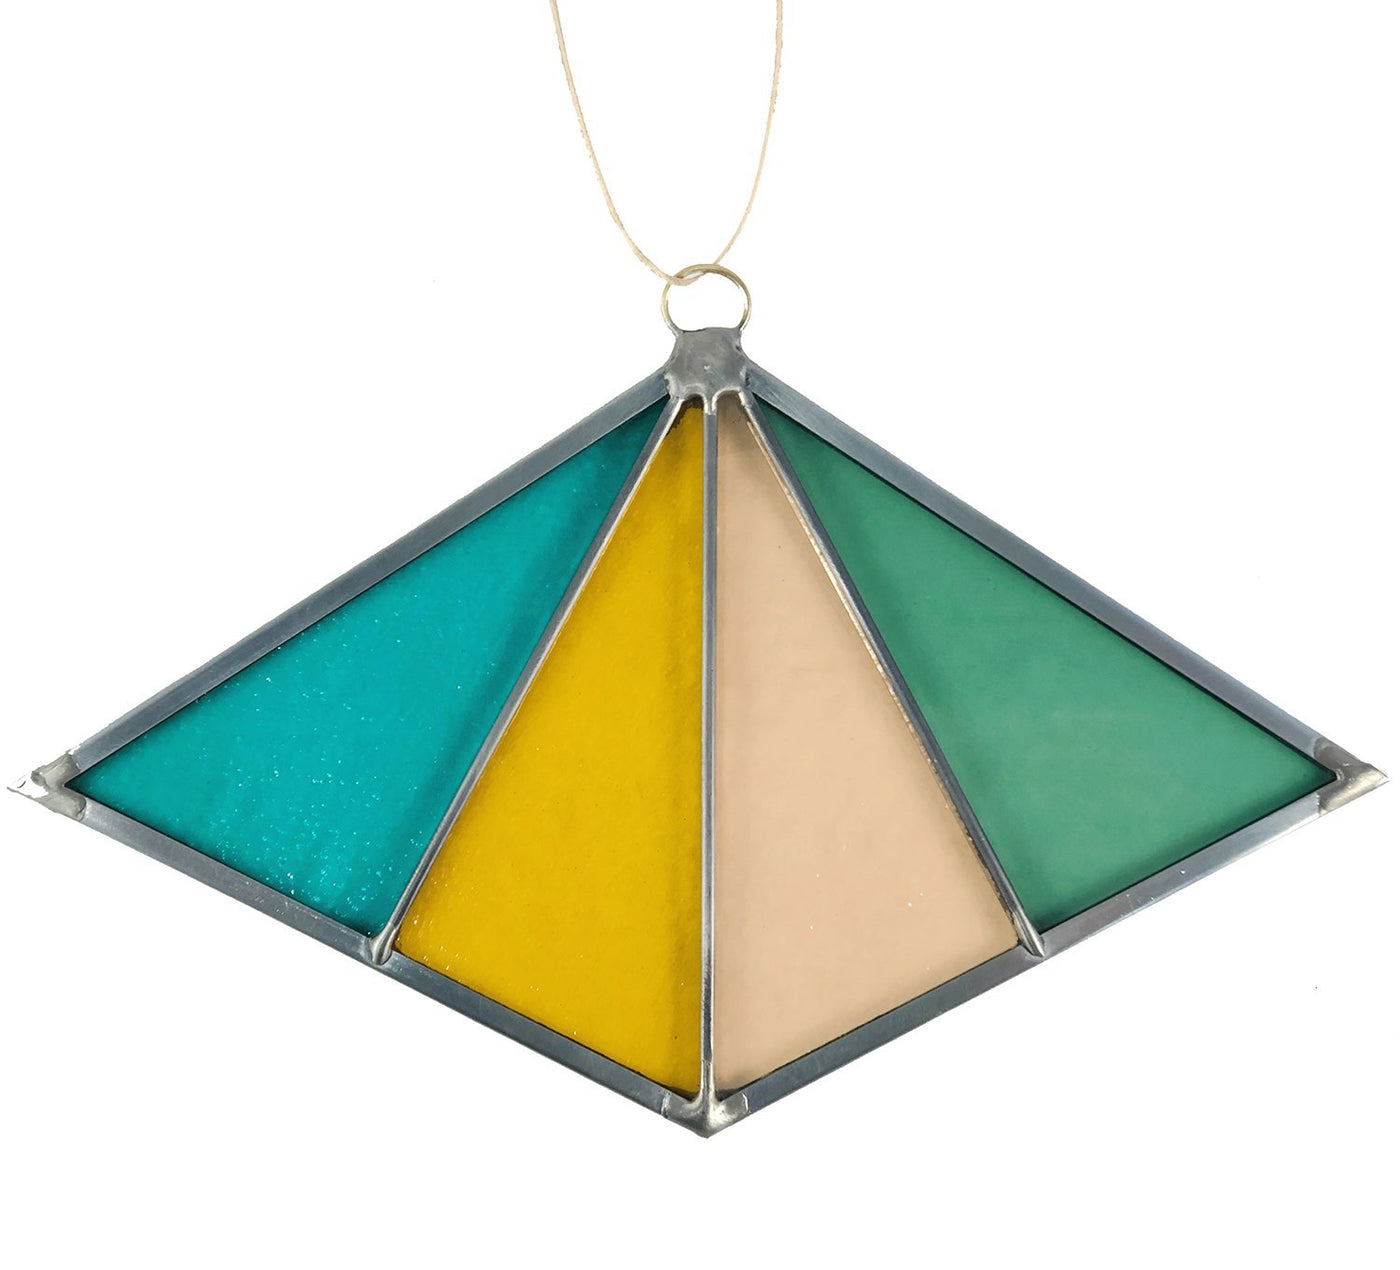 Debbie Bean: Diamond Suncatcher in Ocean